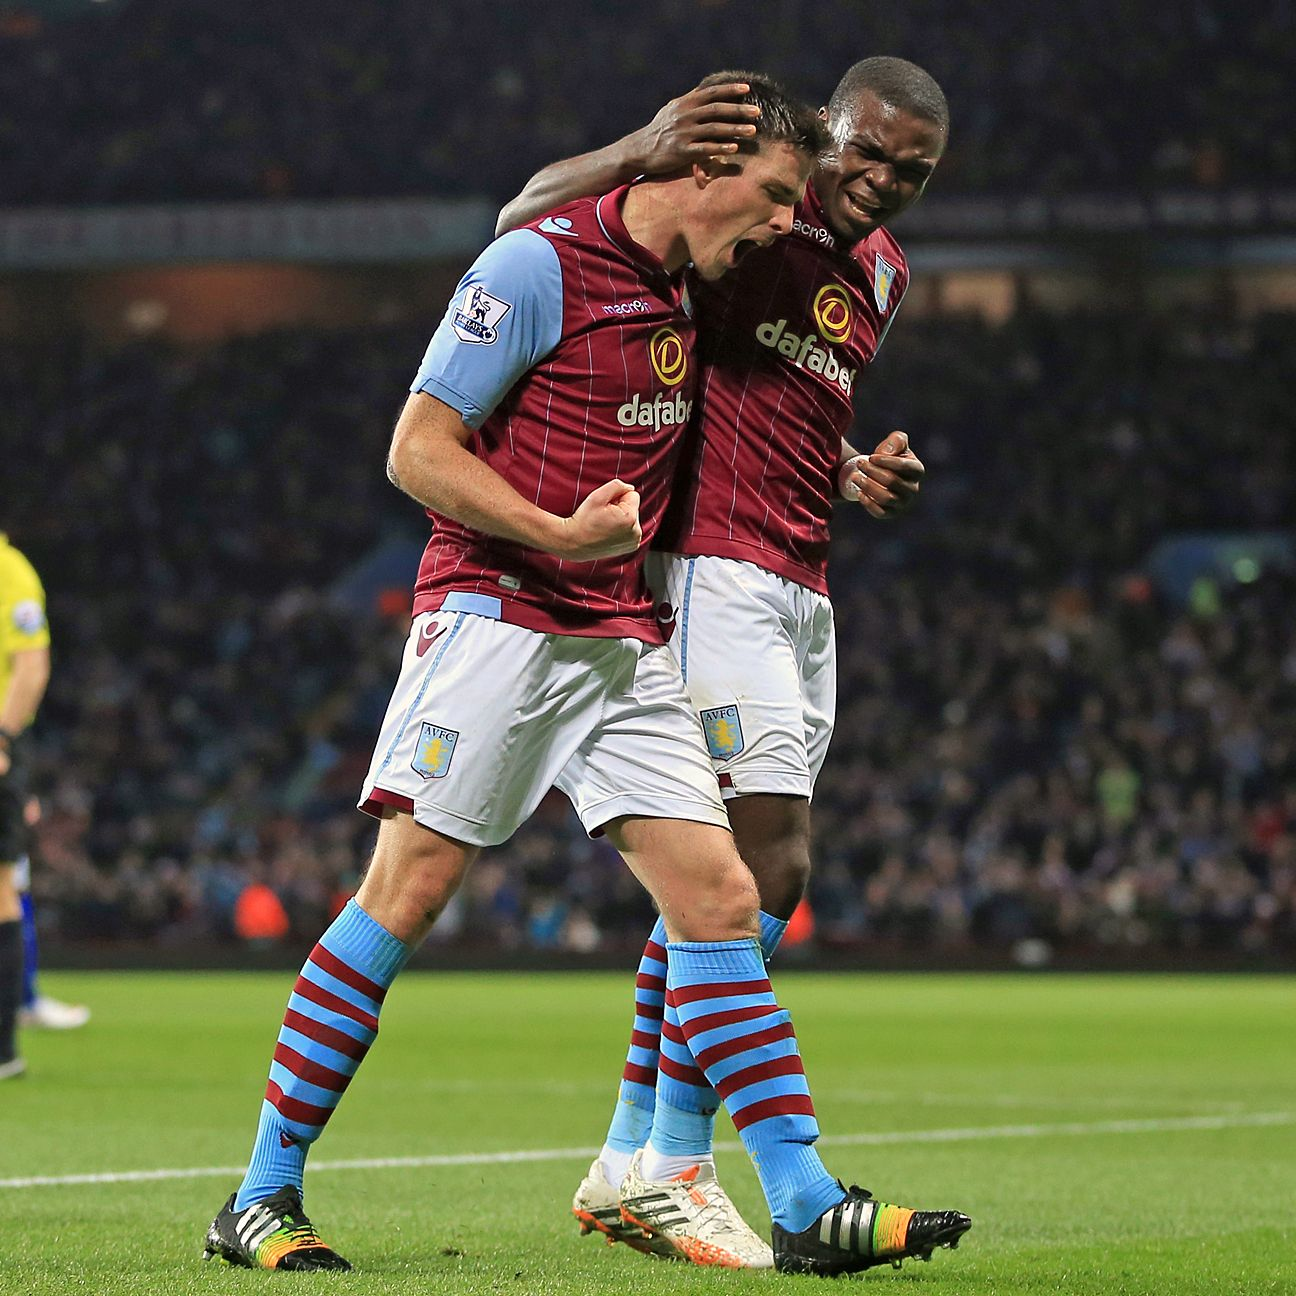 Prior to his season-ending injury in April, Ciaran Clark had excelled in defence for Villa.